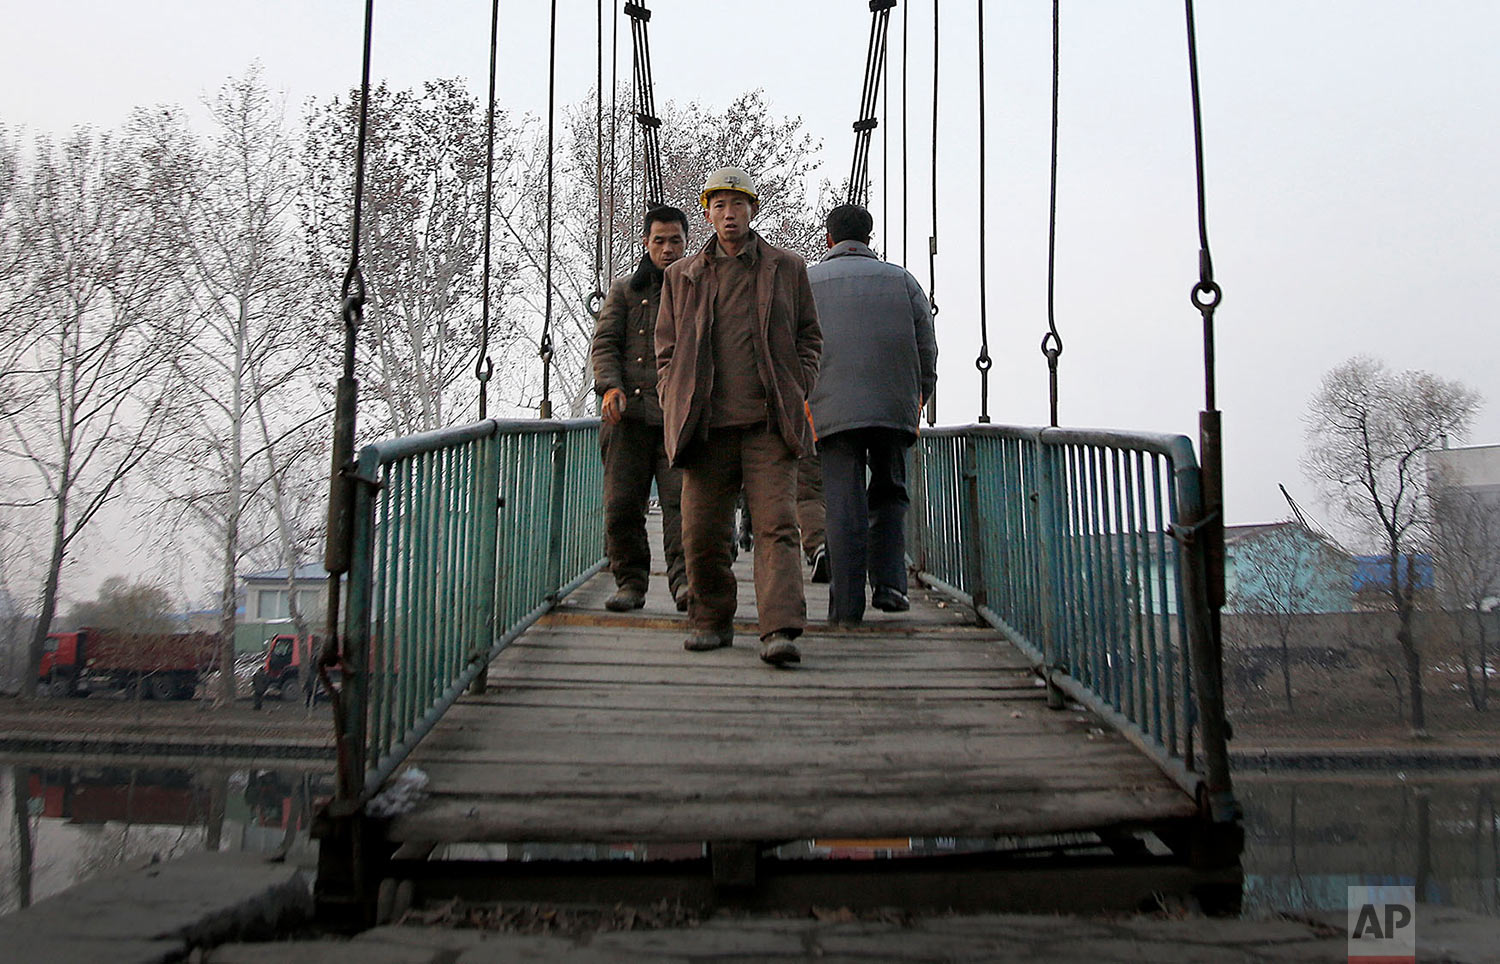 Construction workers walk on a bridge that takes them over the Pothong River in Pyongyang, North Korea, on Nov. 28, 2015. The Pothong River is the second largest river that runs through the North Korean capital. (AP Photo/Wong Maye-E)